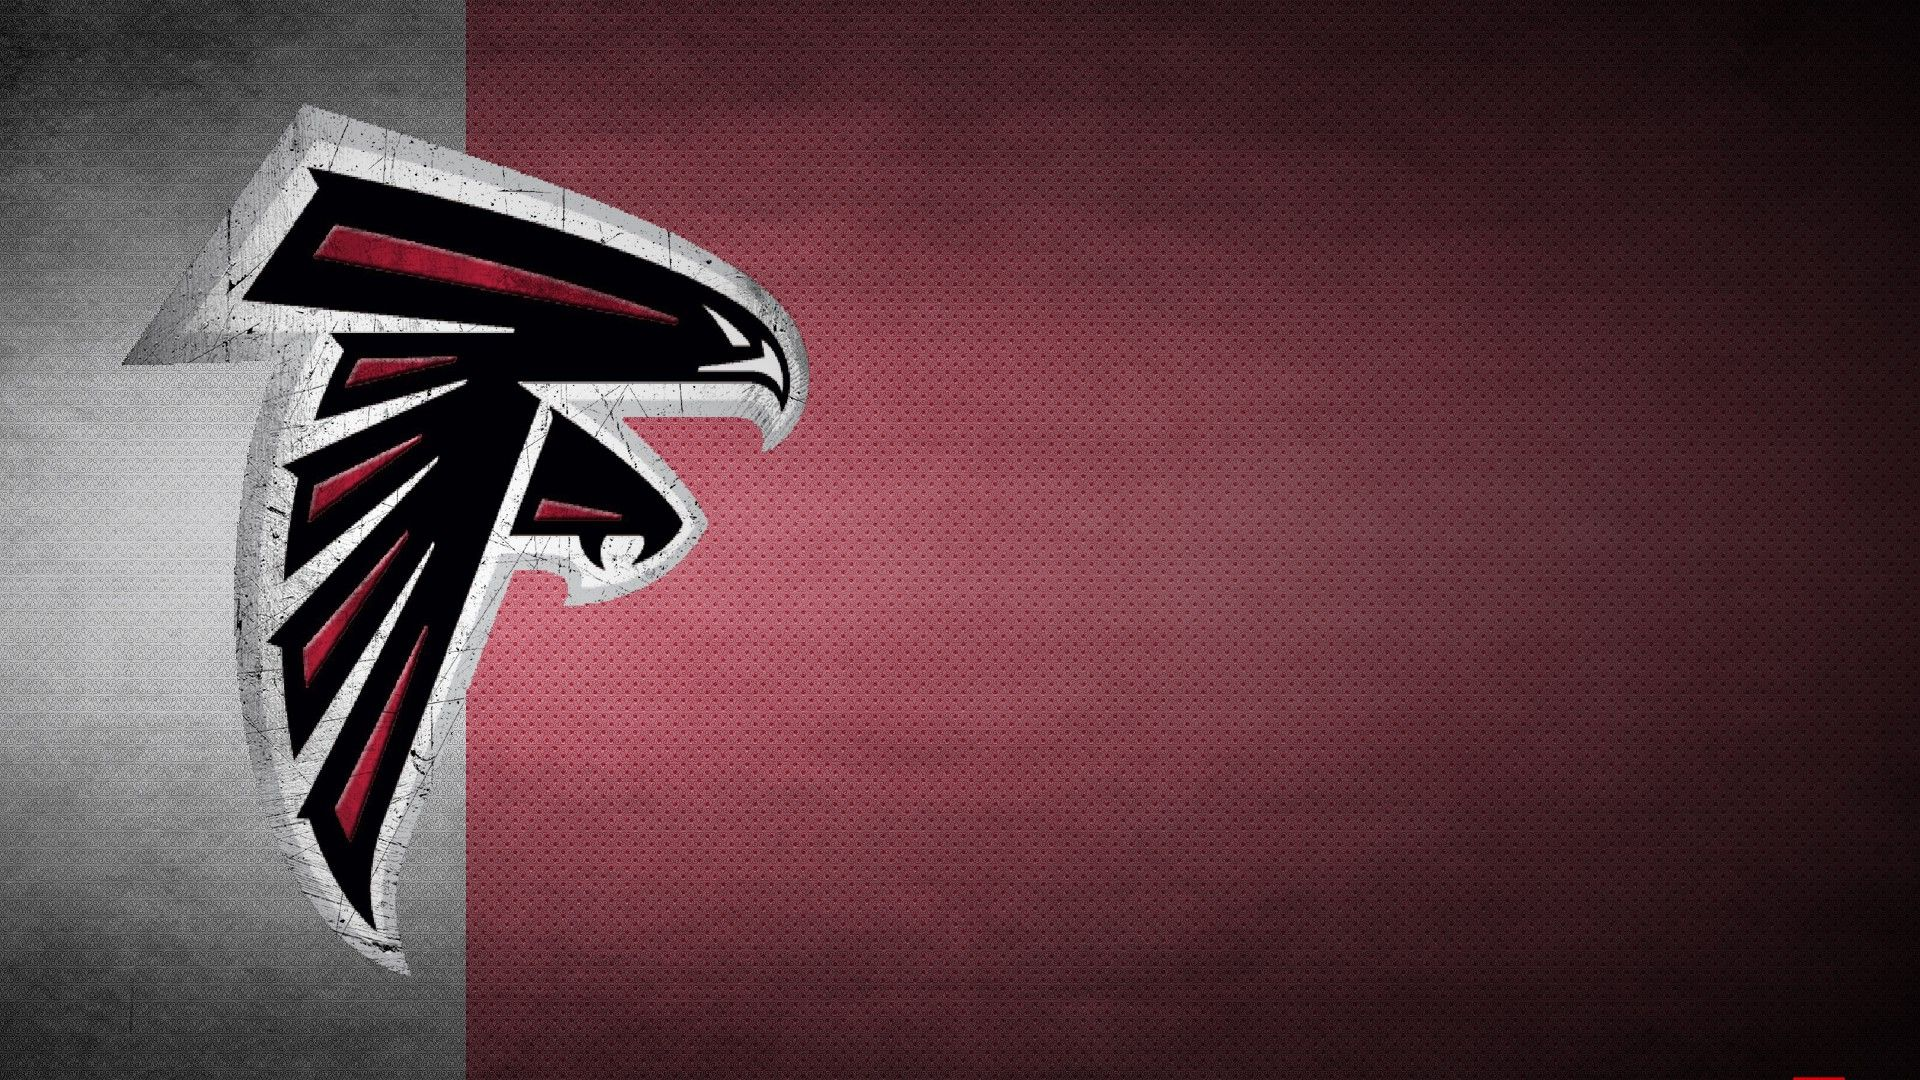 HD Atlanta Falcons Backgrounds Atlanta falcons